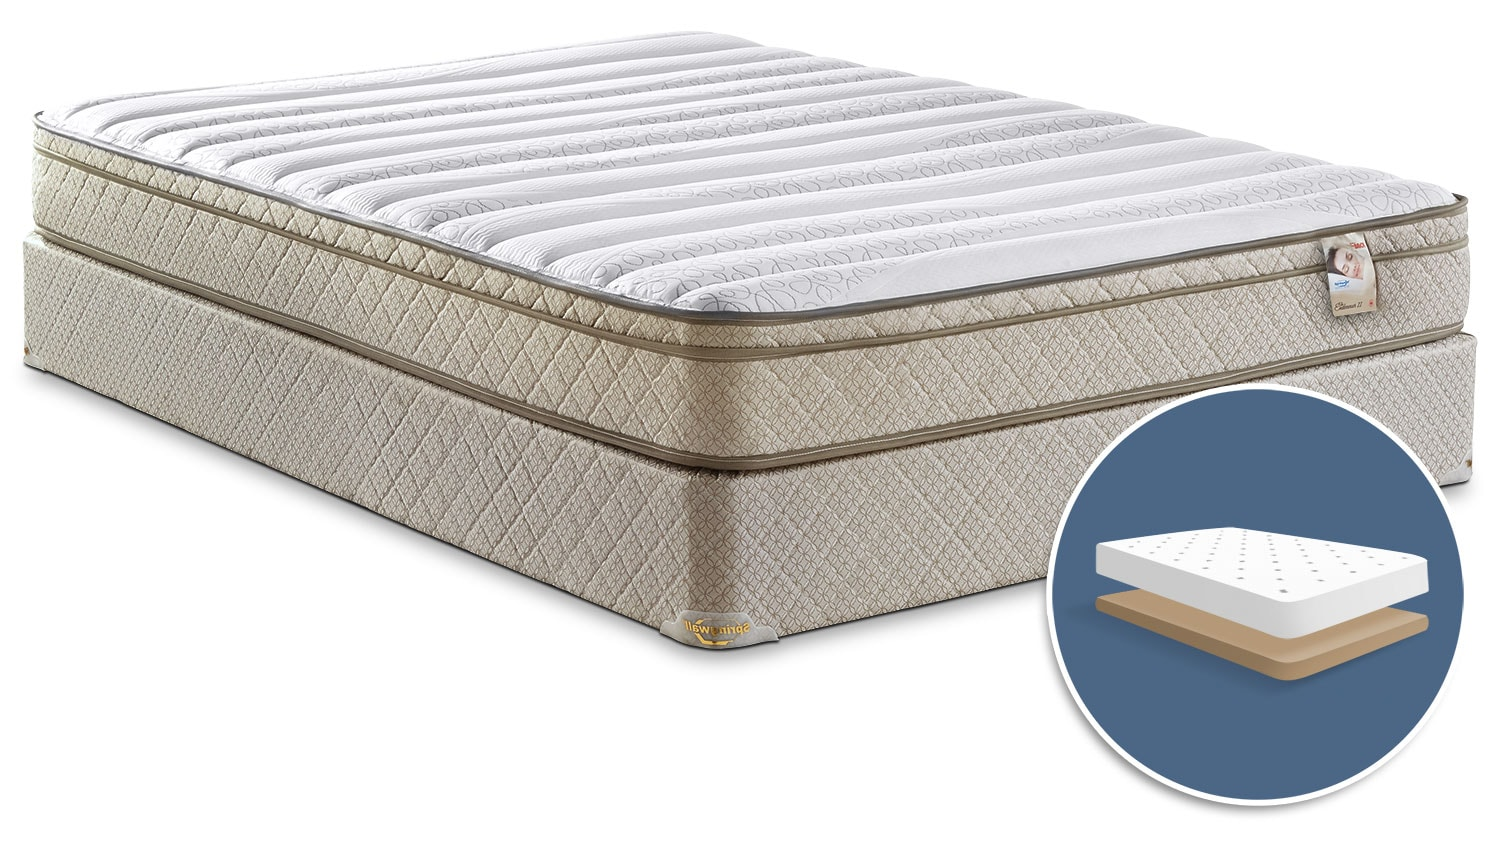 Mattresses and Bedding - Springwall Endeavour 2 Euro-Top Firm Full Mattress and Low-Profile Boxspring Set